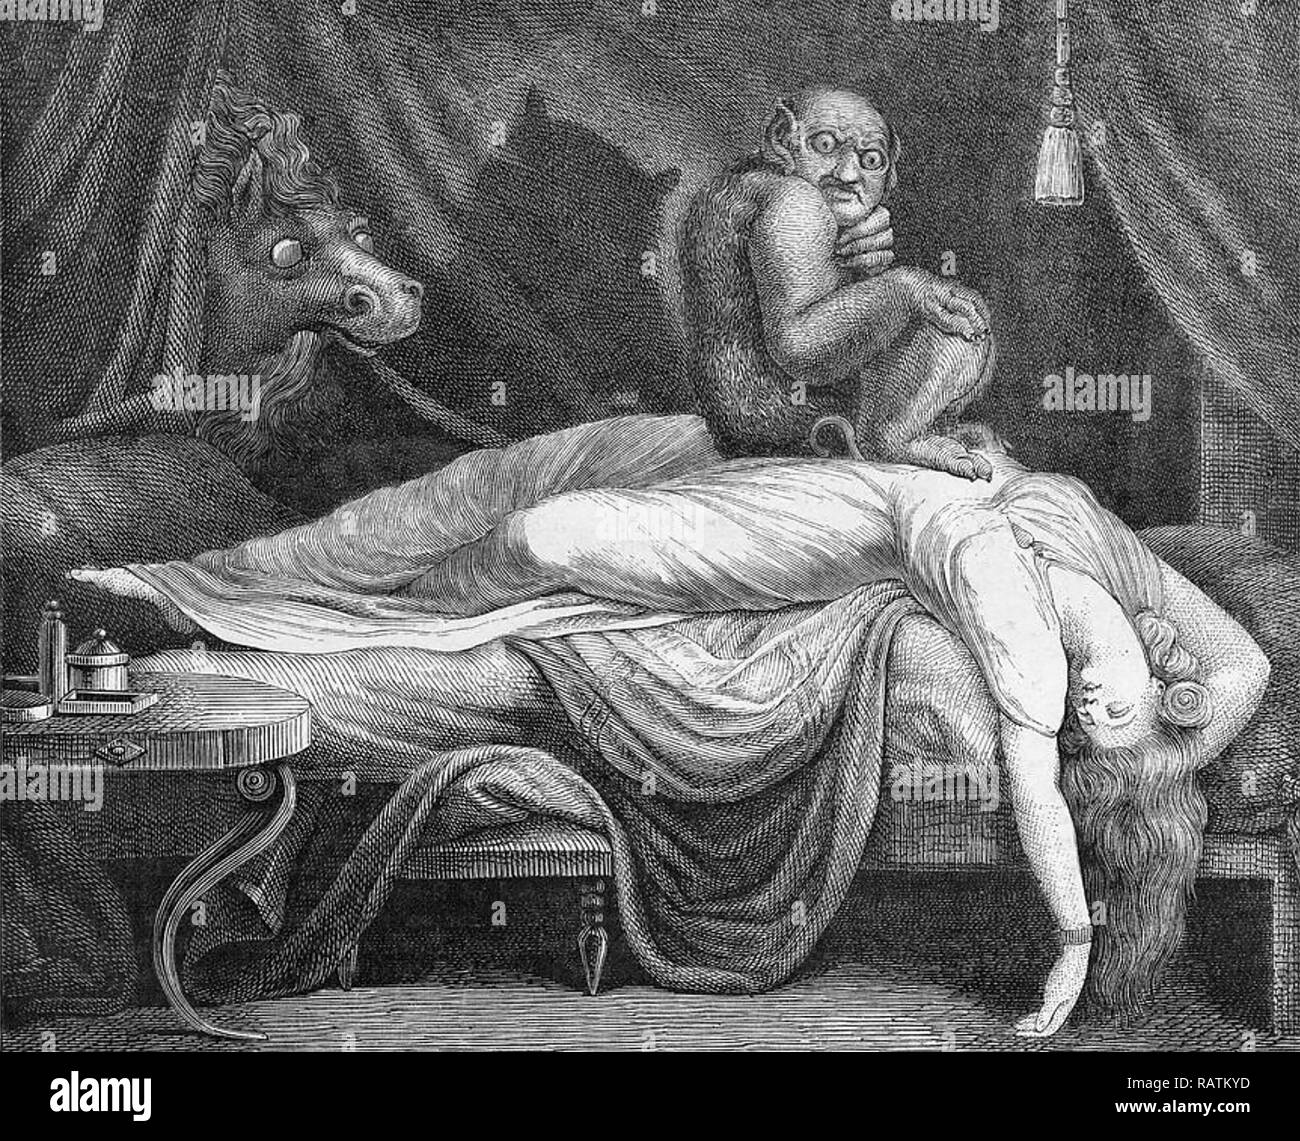 GOTHIC NIGHTMARES A 1780 illustration - Stock Image